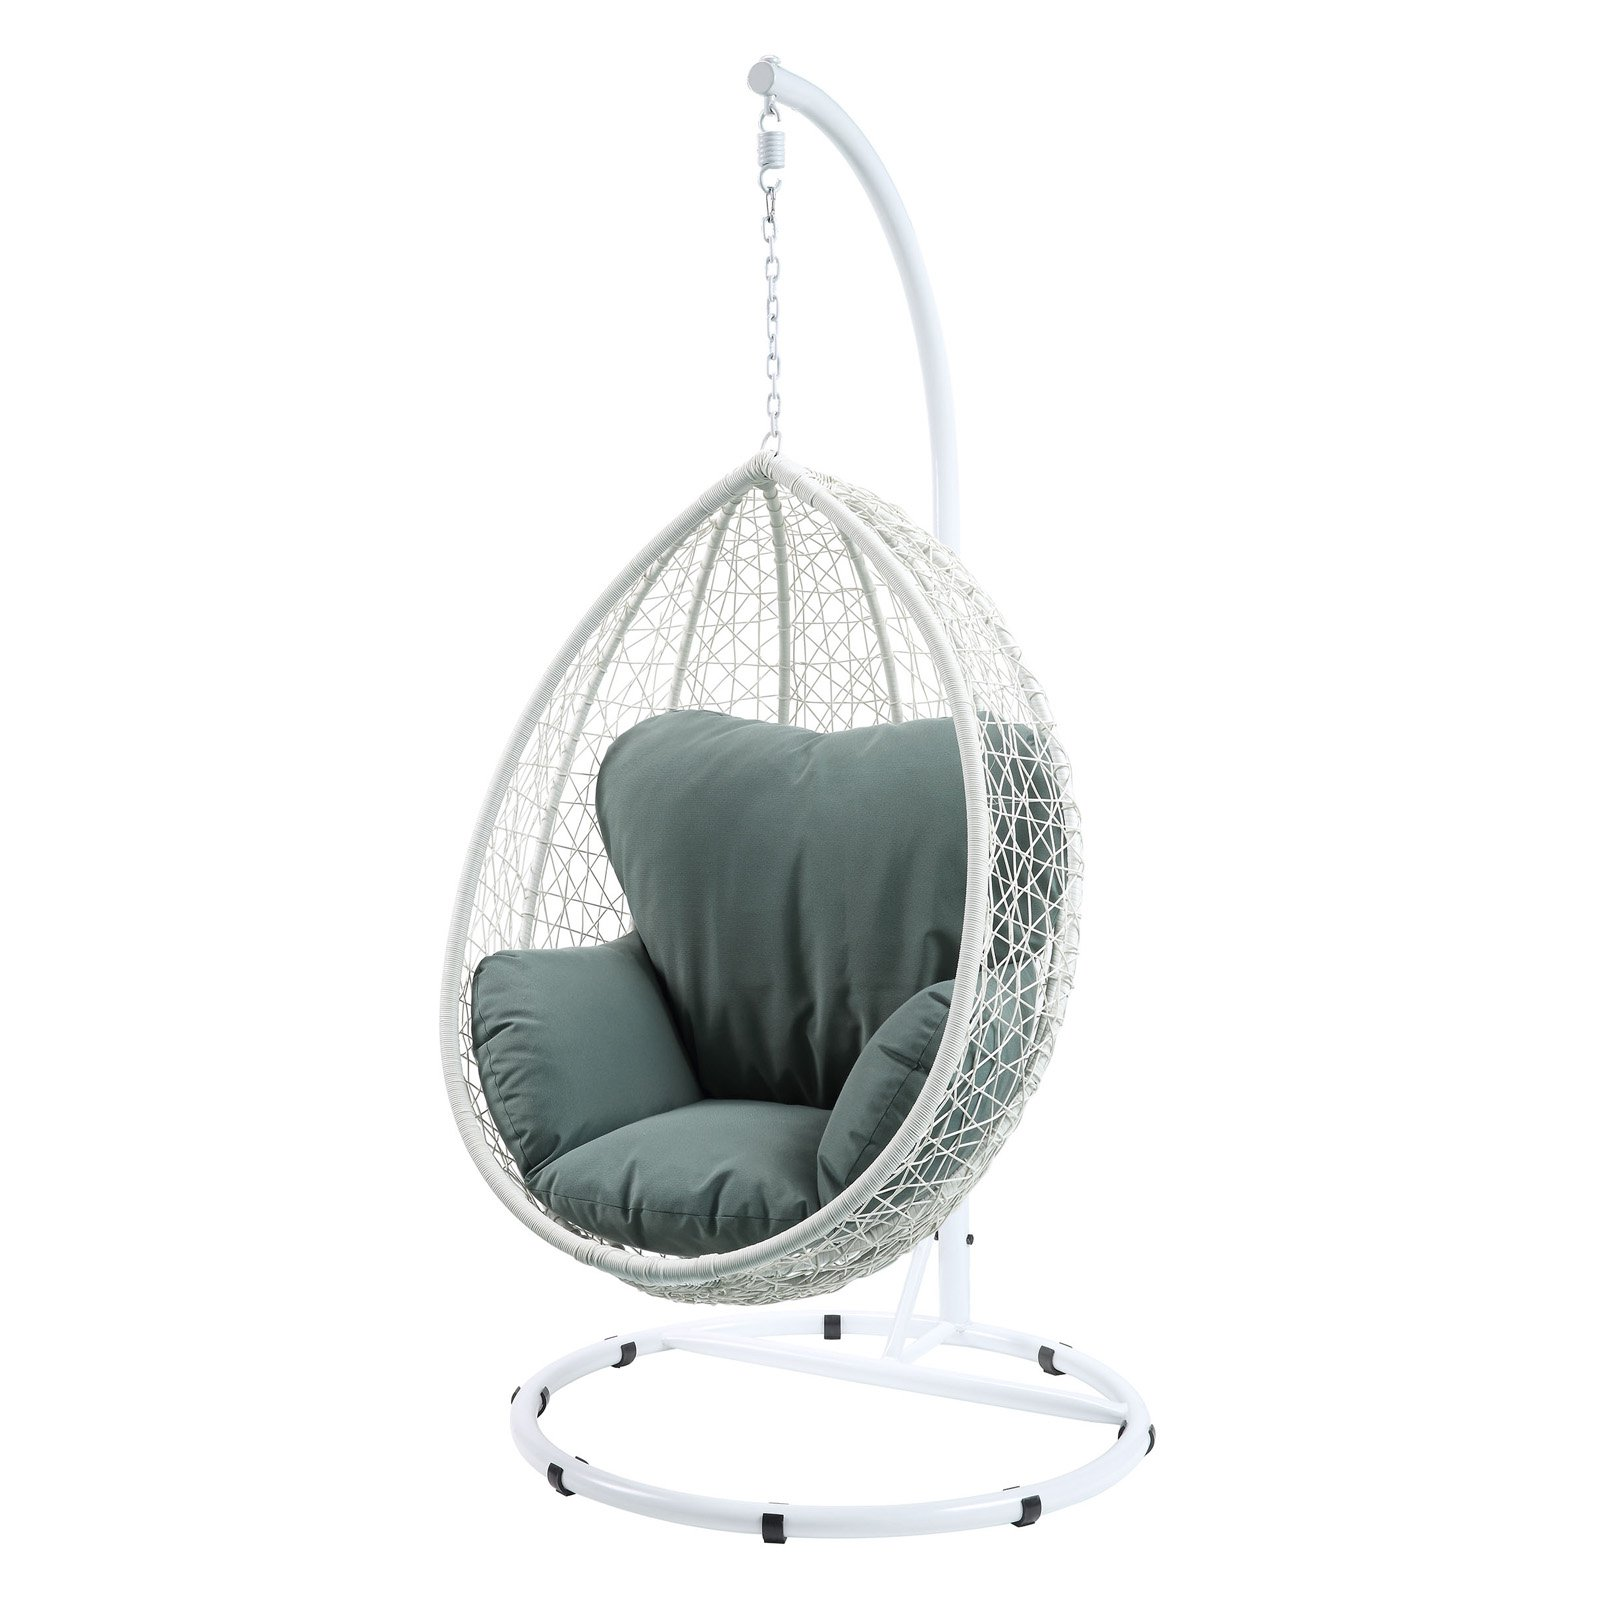 Hanging Egg Chair Outdoor Acme Furniture Simona White Wicker Outdoor Hanging Egg Chair With Cushion